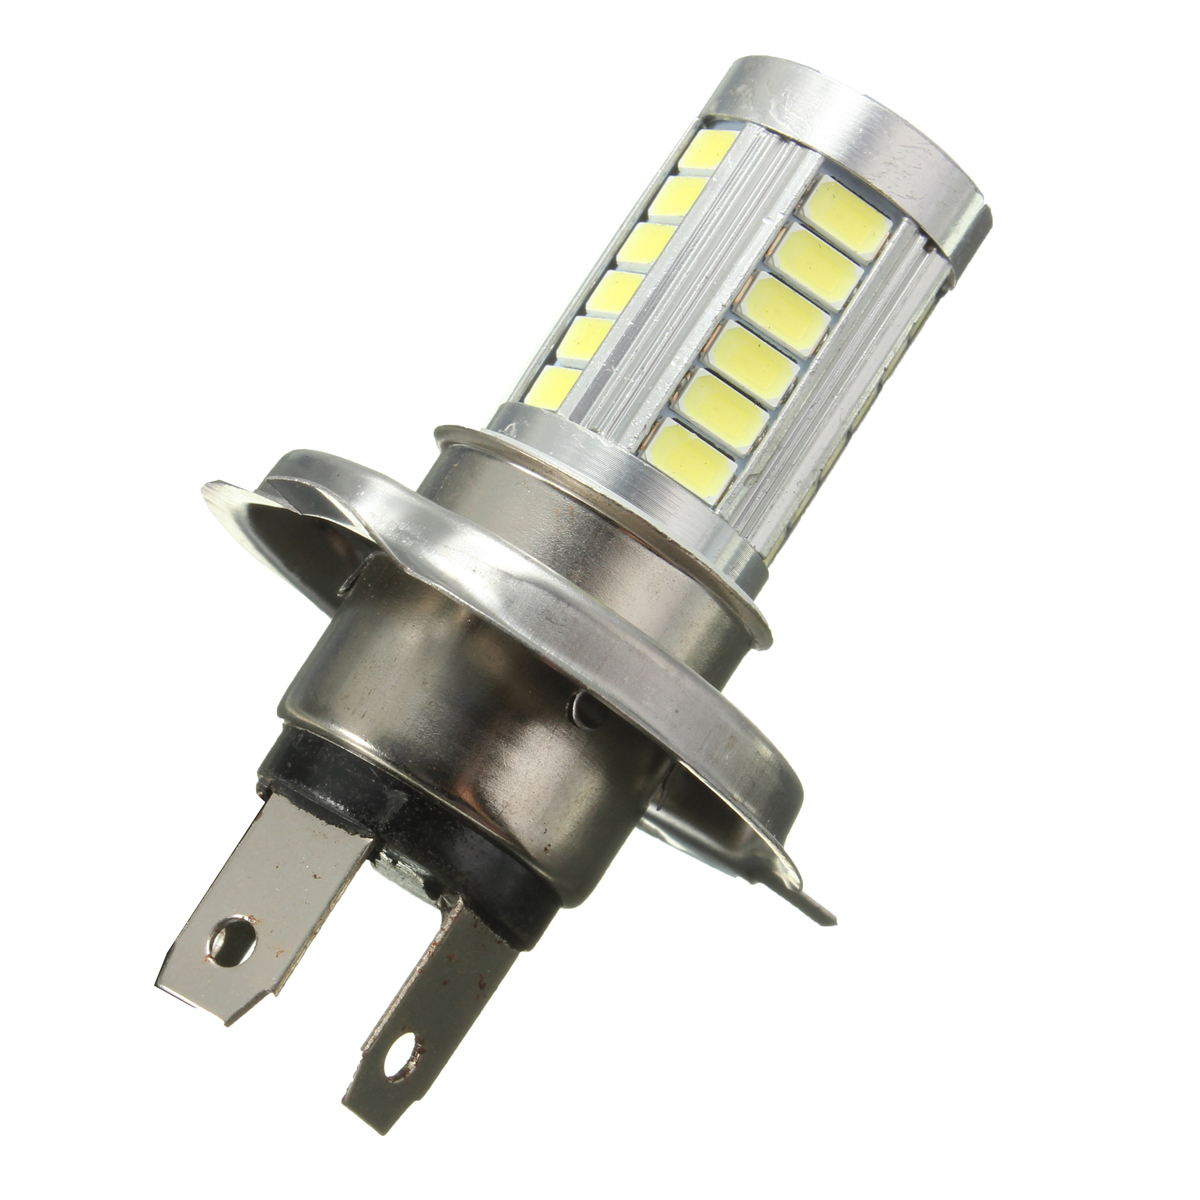 1pcs 10W 800LM 6000K White H4 5630 33SMD LED Car Headlights Driving Lamp Bulb